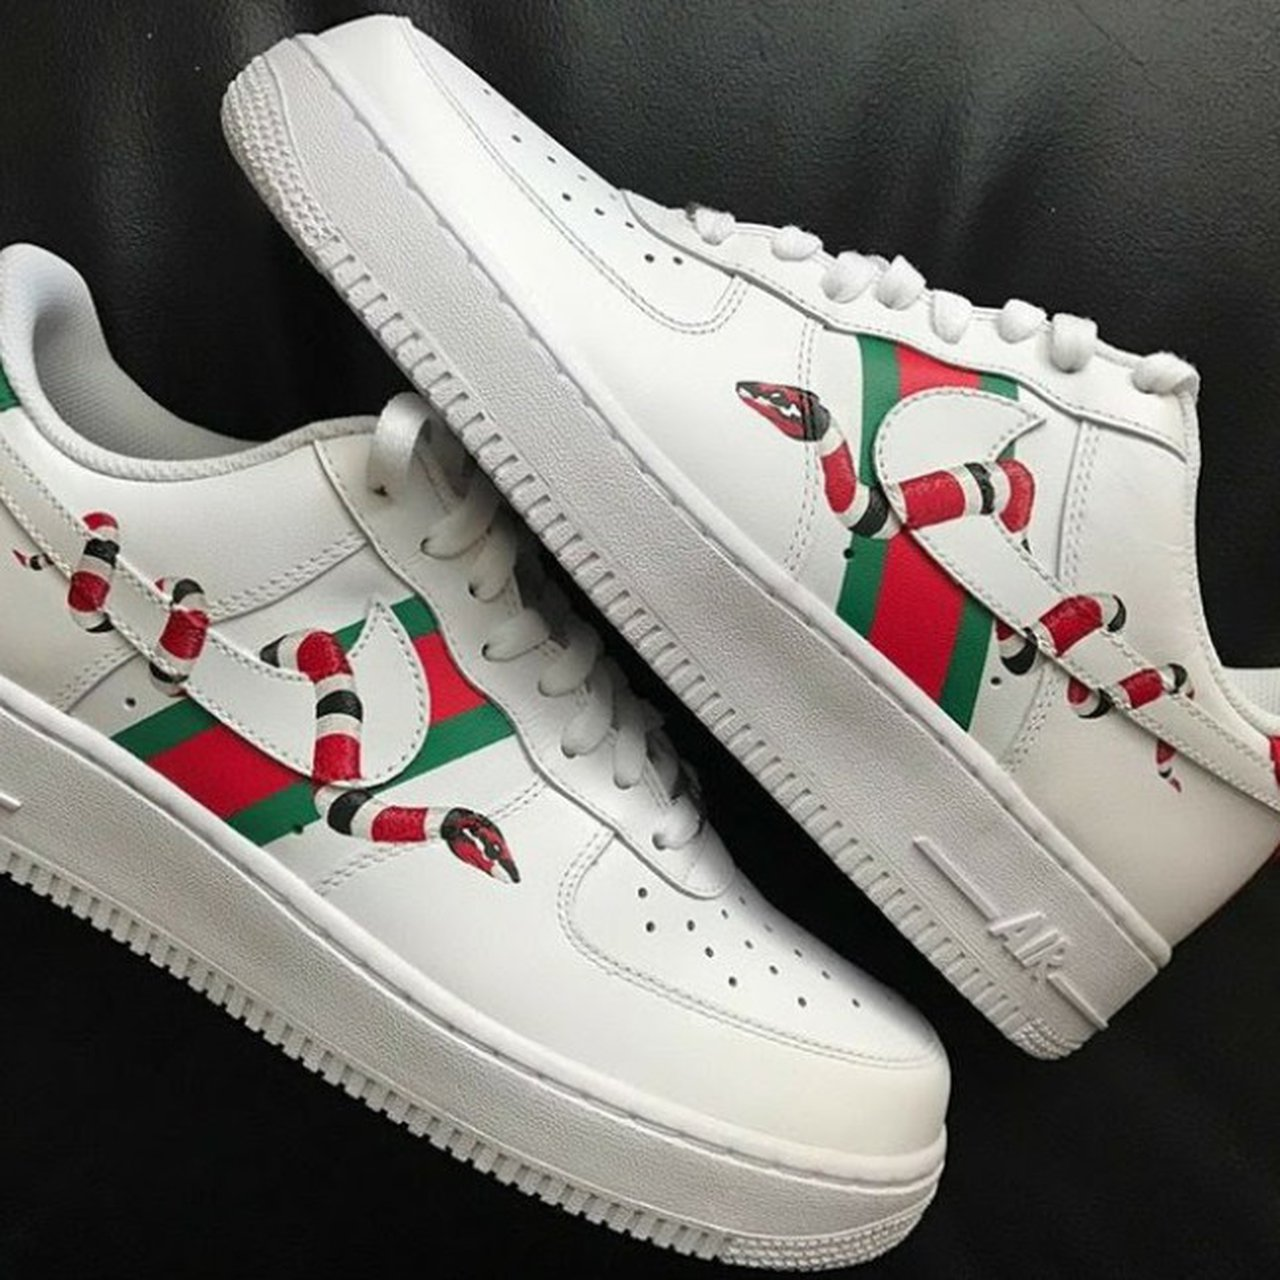 these are custom gucci x nike custom shoes are newly